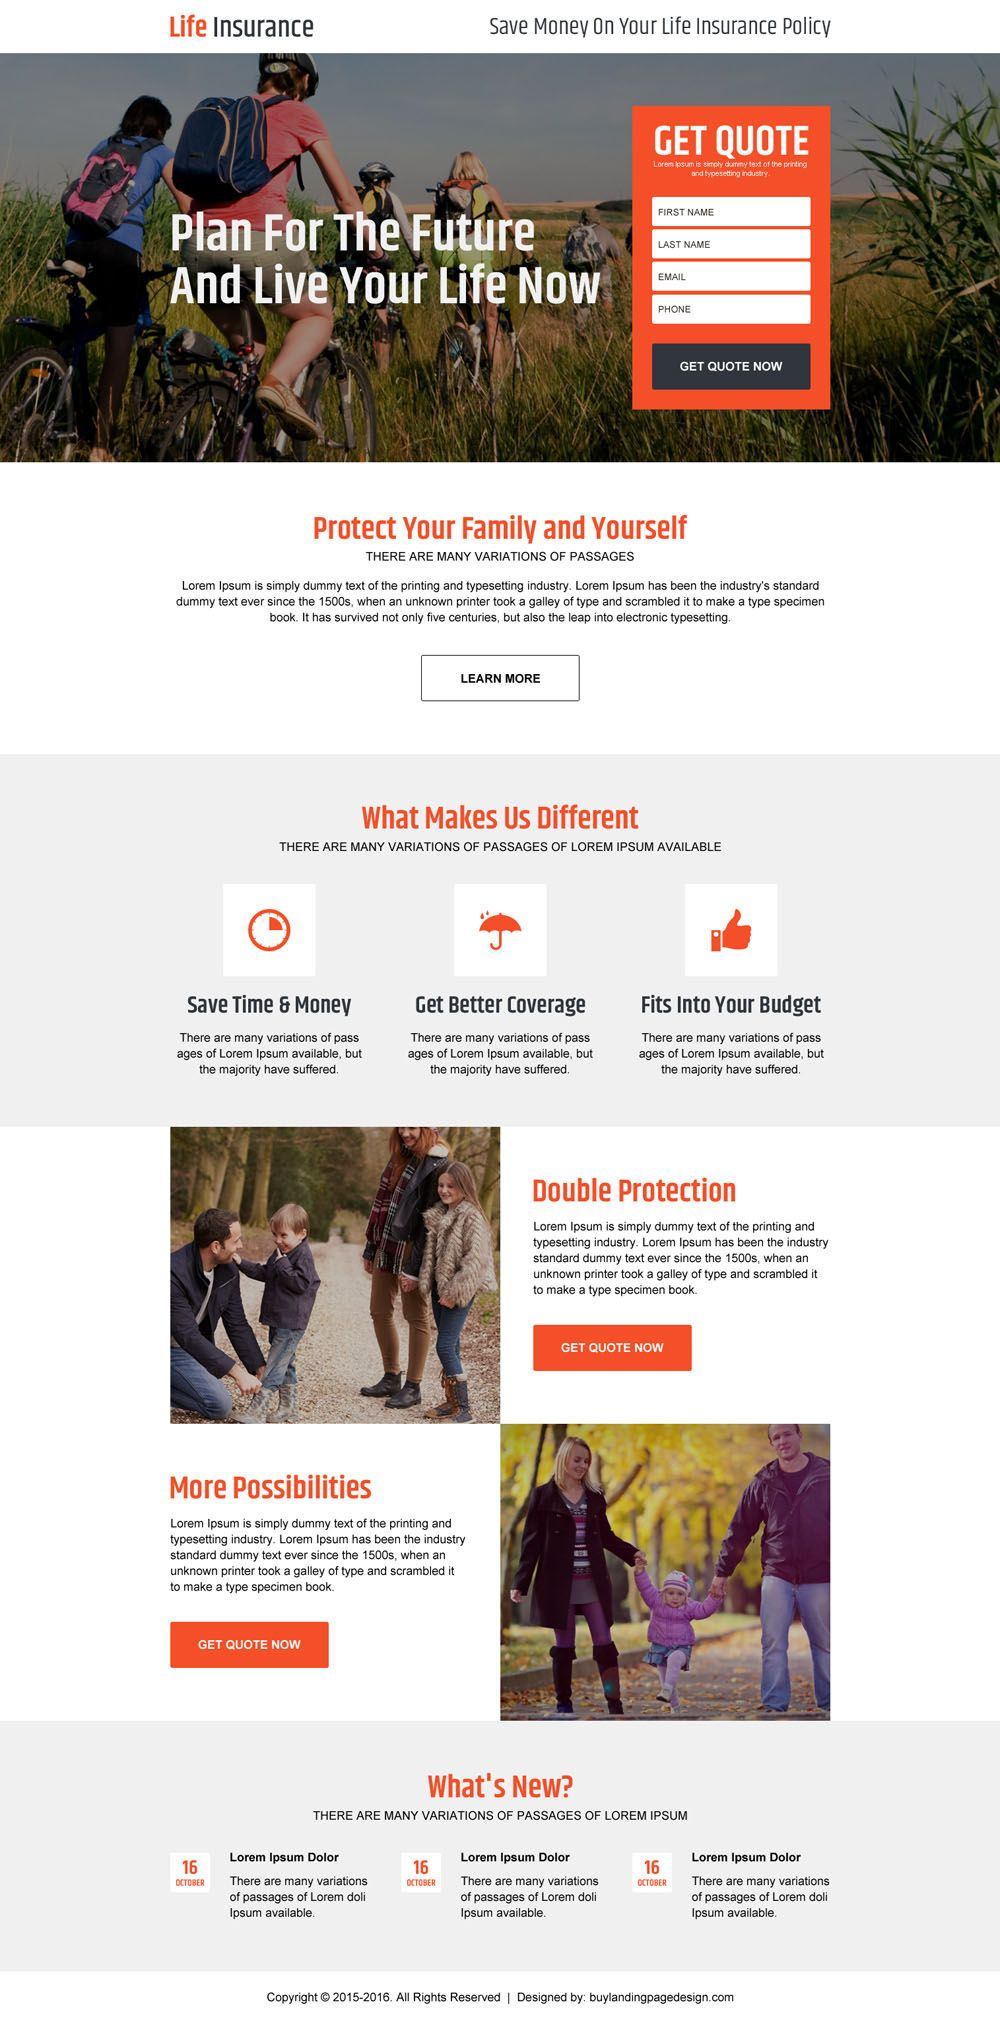 Life Insurance For Family And Yourself Lead Gen High Converting